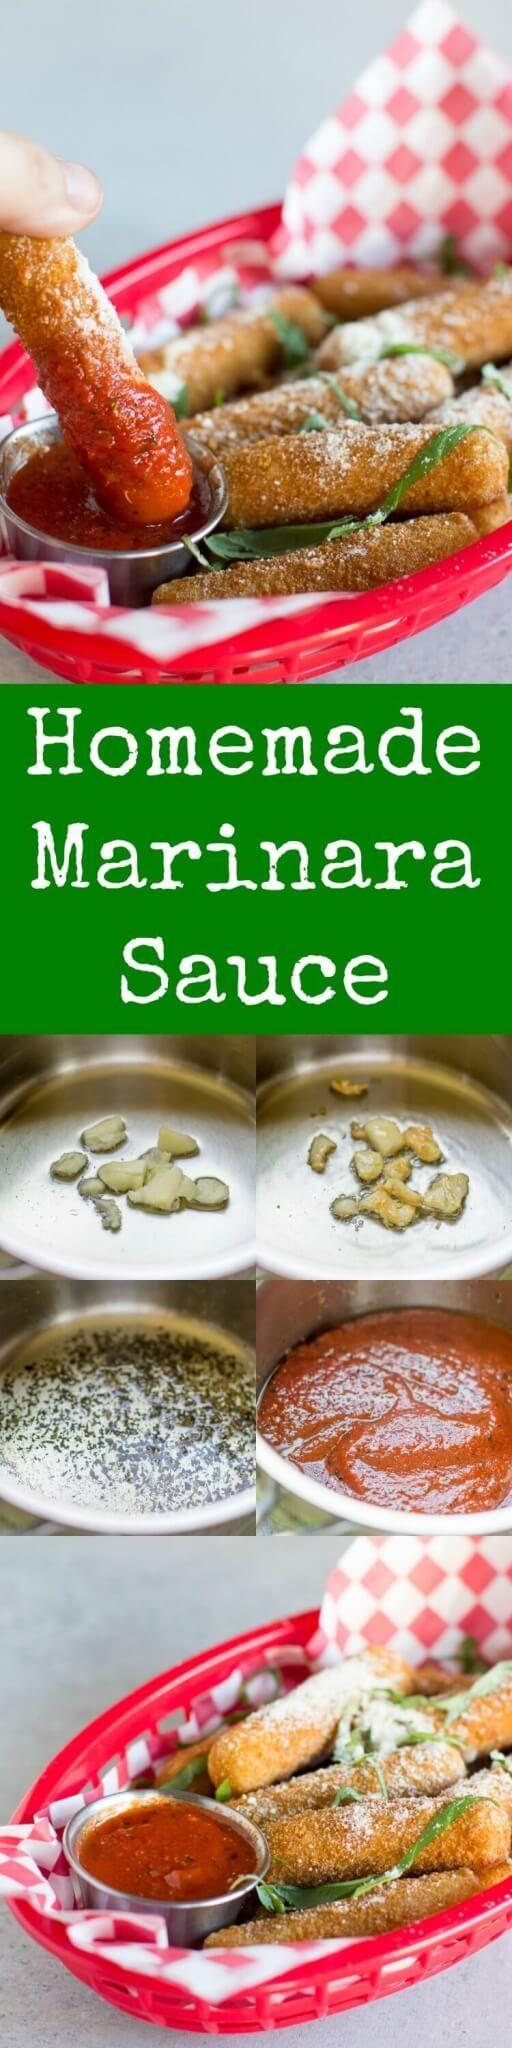 This homemade Marinara Sauce is ideal for dipping all your favorite appetizers. It's fast and easy made with just 5 pantry ingredients and ready in minutes!